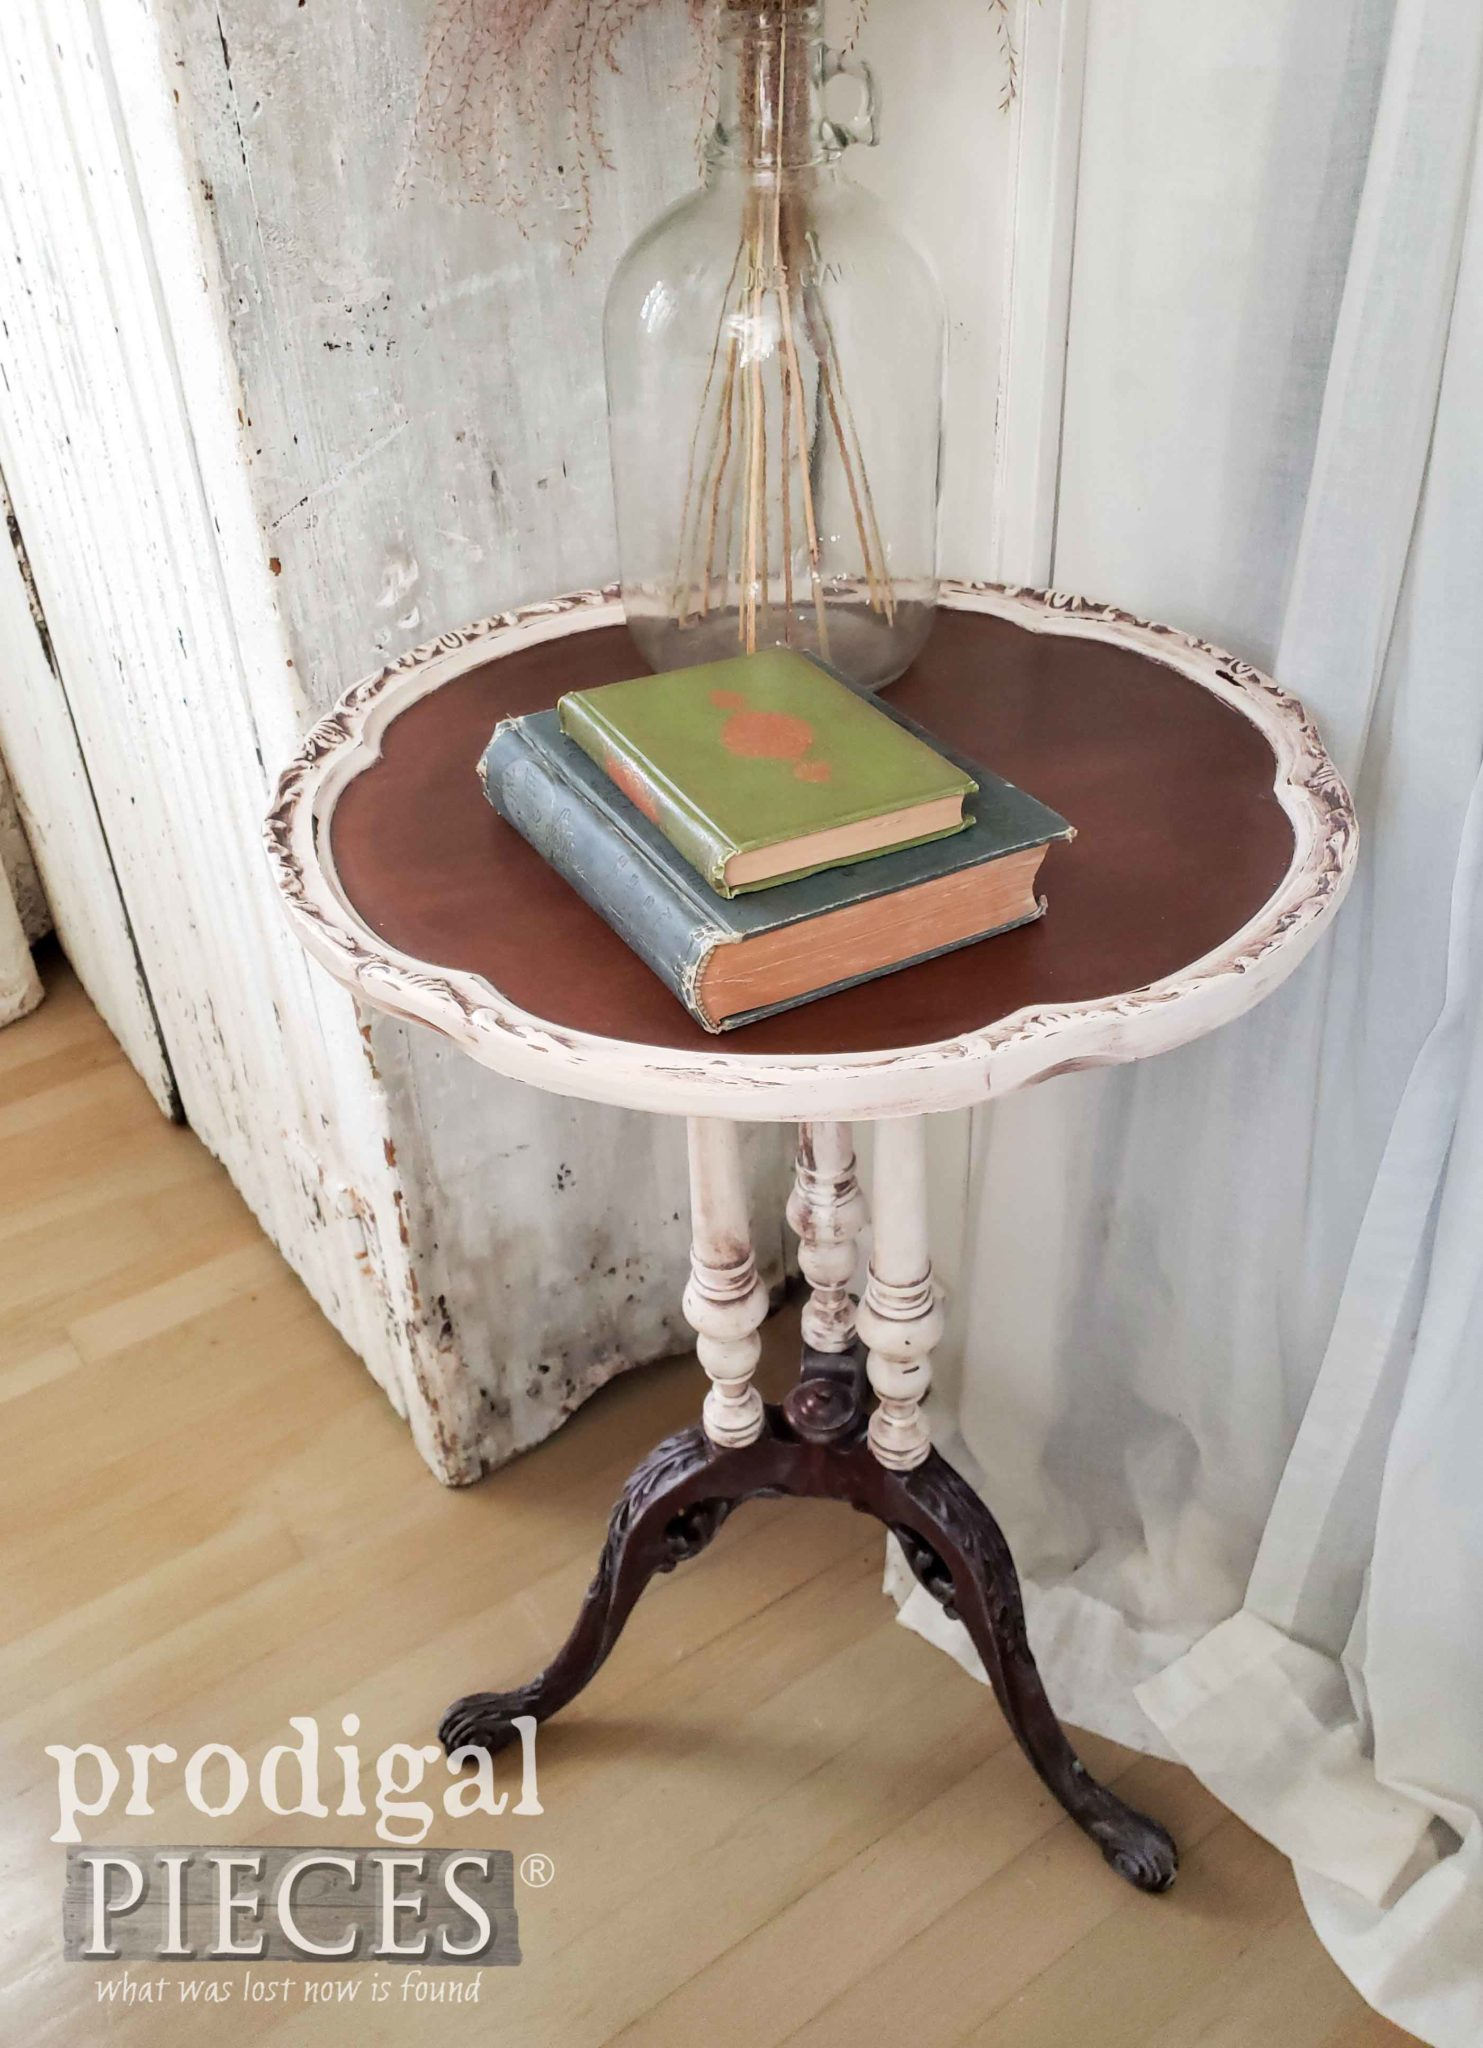 Ornate Antique Pie Crust Table Saved from the Trash by Larissa of Prodigal Pieces | prodigalpieces.com #prodigalpieces #diy #furniture #home #homedecor #farmhouse